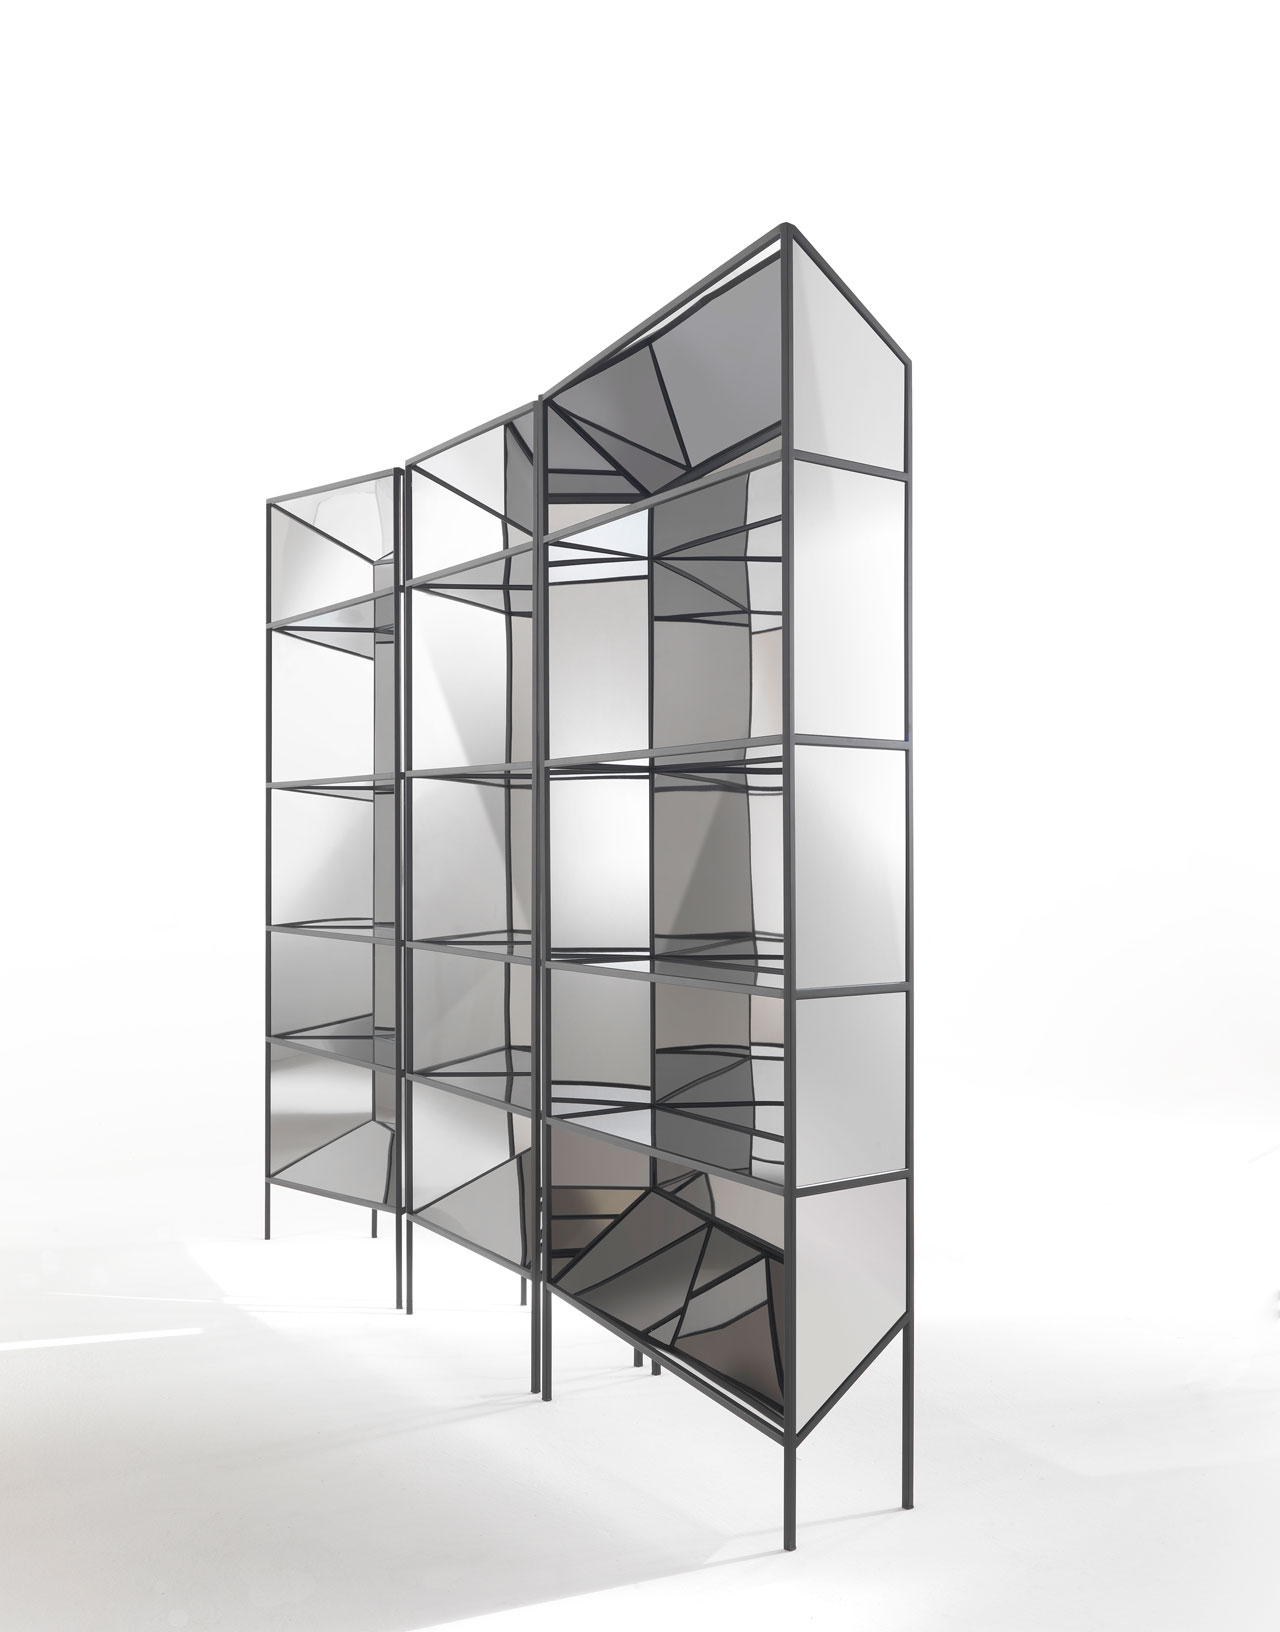 PERFLECT display cabinet by Sam Baron for JCP Universe.Materials: metal structure in grained black finish with super mirror steel panels.Dimensions (H x W x D): 200cm x 78cm x 30cm – central unit & 210cm x 110cm x 30cm – side units.Photo by Silvio Macchi © JCP Universe.